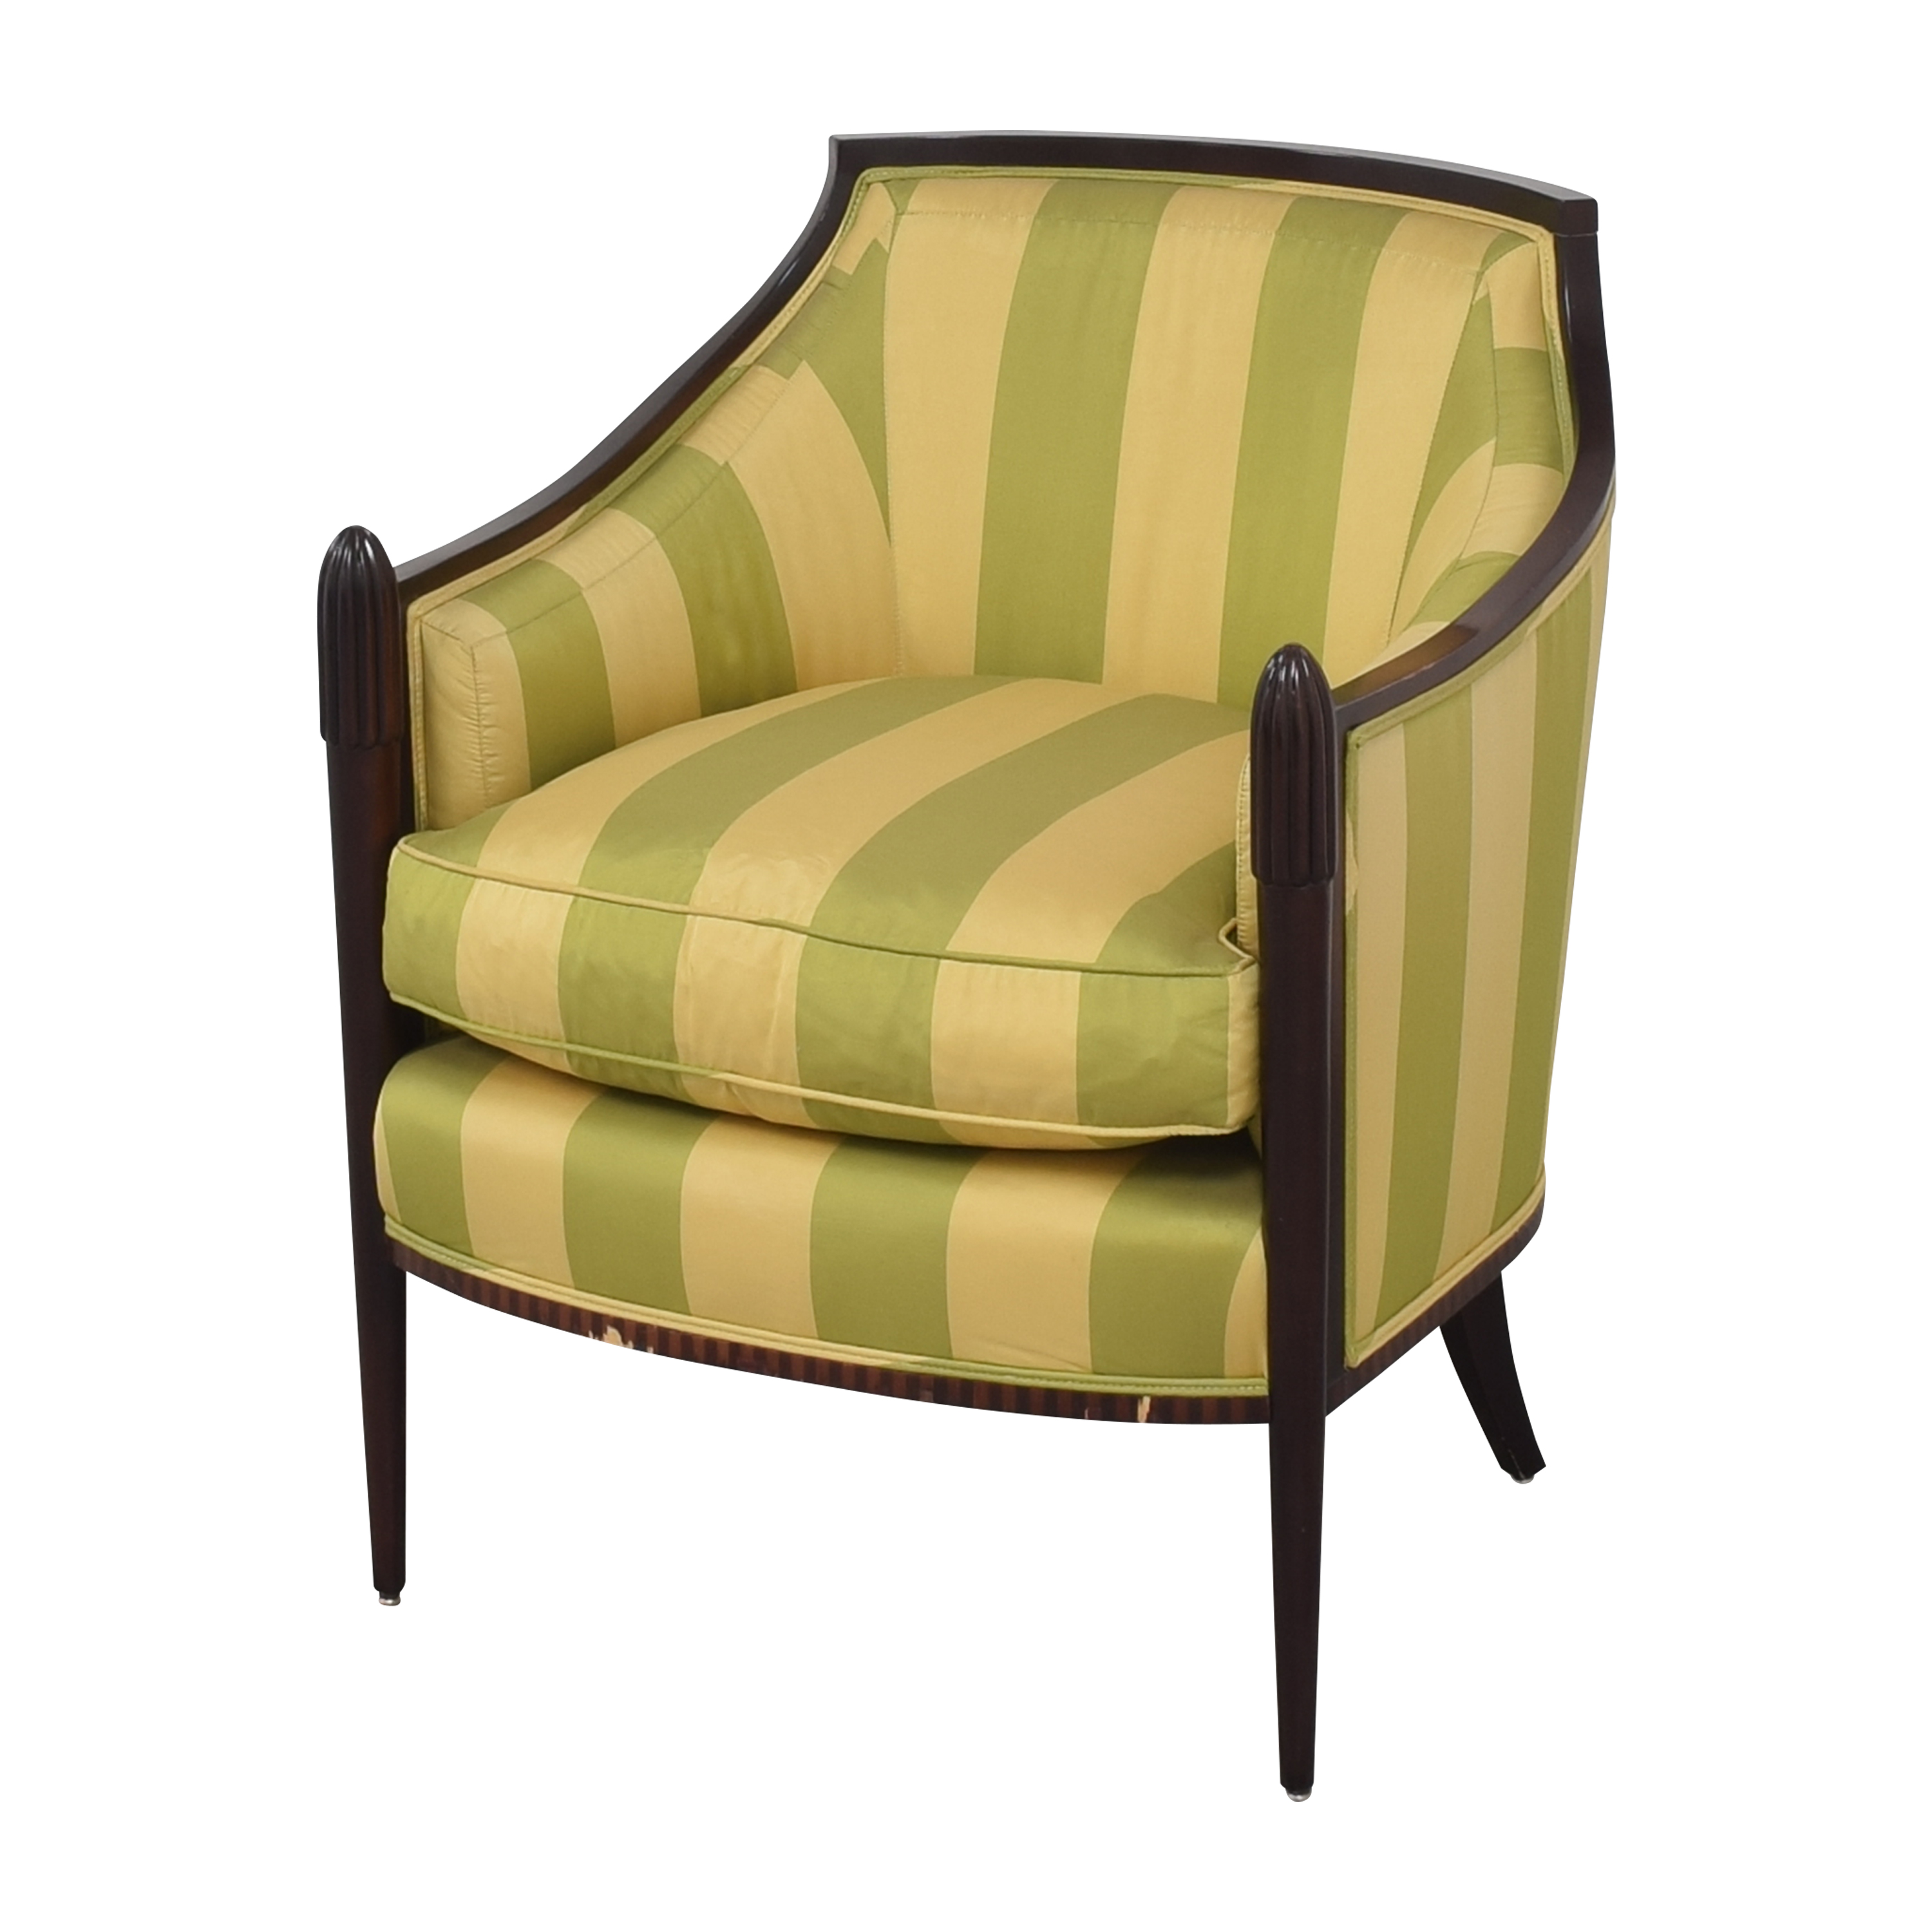 shop Baker Furniture Barbara Barry for Baker Furniture Deco Classic Lounge Chair online